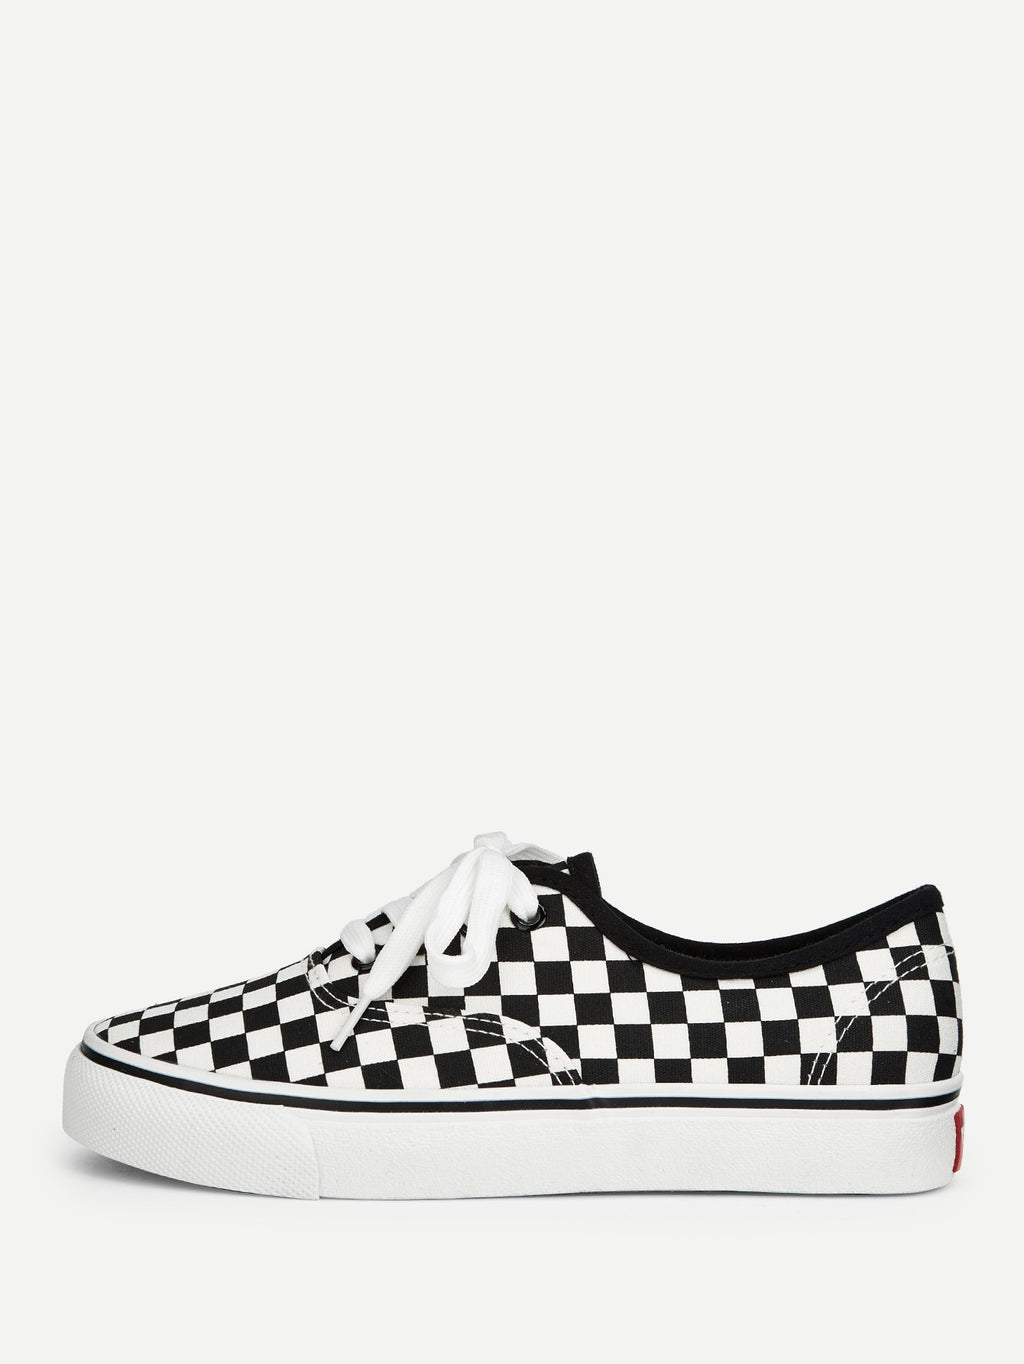 Womens Sneakers - Gingham Lace-up Sneakers